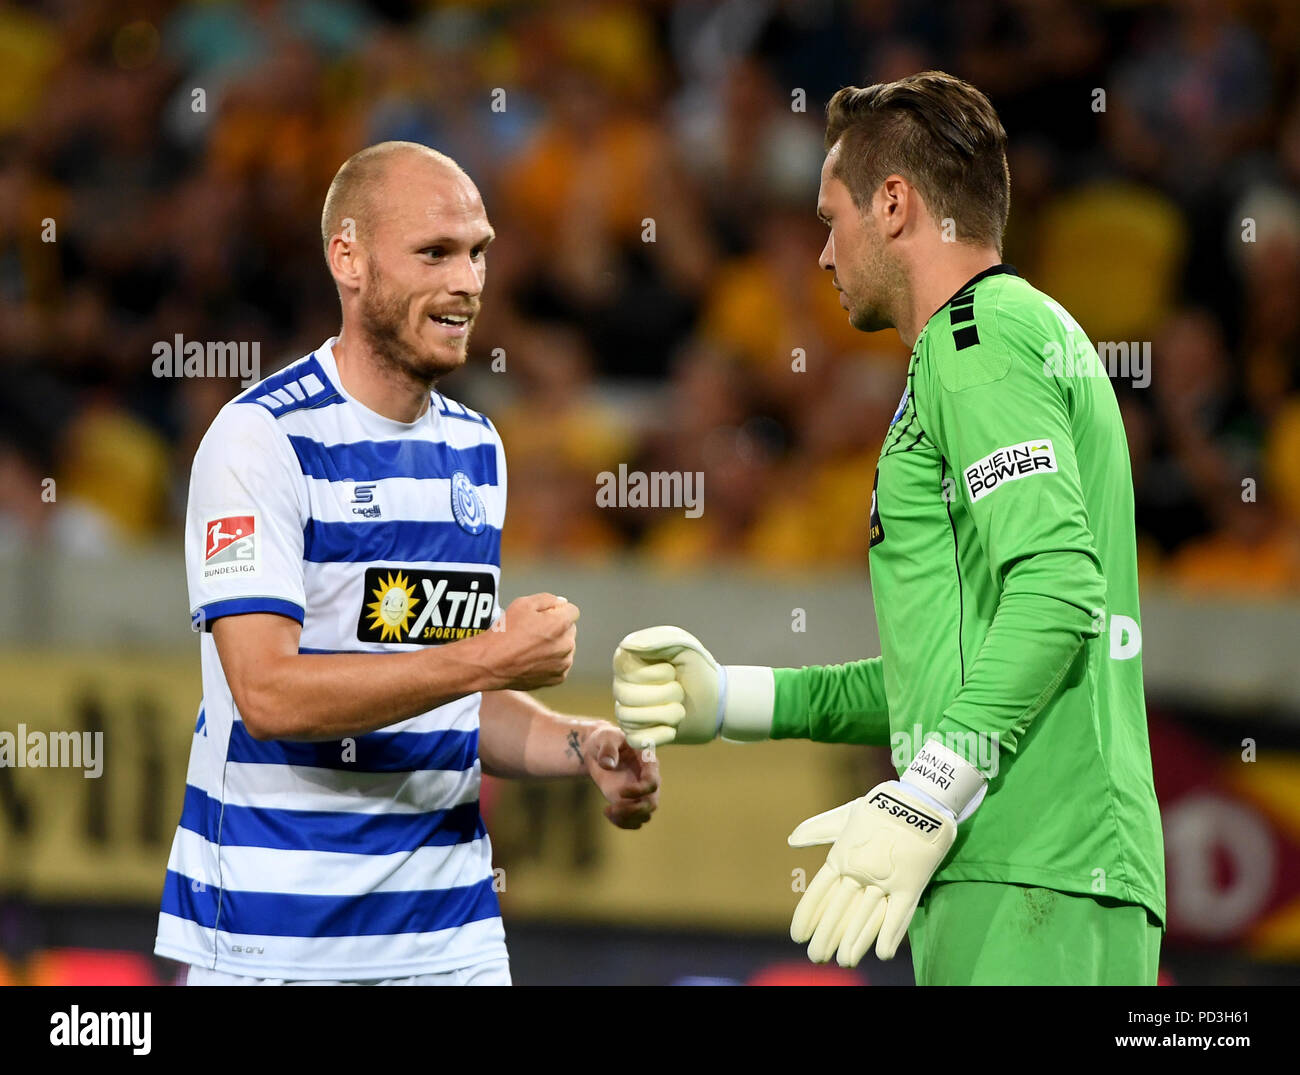 Dresden, Germany. 06th Aug, 2018. 06.08.2018, Saxony, Dresden: Soccer, 2nd Bundesliga, 1st Matchday, Dynamo Dresden vs MSV Duisburg in the DDV Stadium. Duisburg goalkeeper Daniel Davari (r) and Gerrit Nauber meet on the pitch. IMPORTANT NOTE: DFL regulations prohibit any use of photographs as image sequences and/or quasi-video. Credit: Monika Skolimowska/dpa-Zentralbild/dpa/Alamy Live News - Stock Image